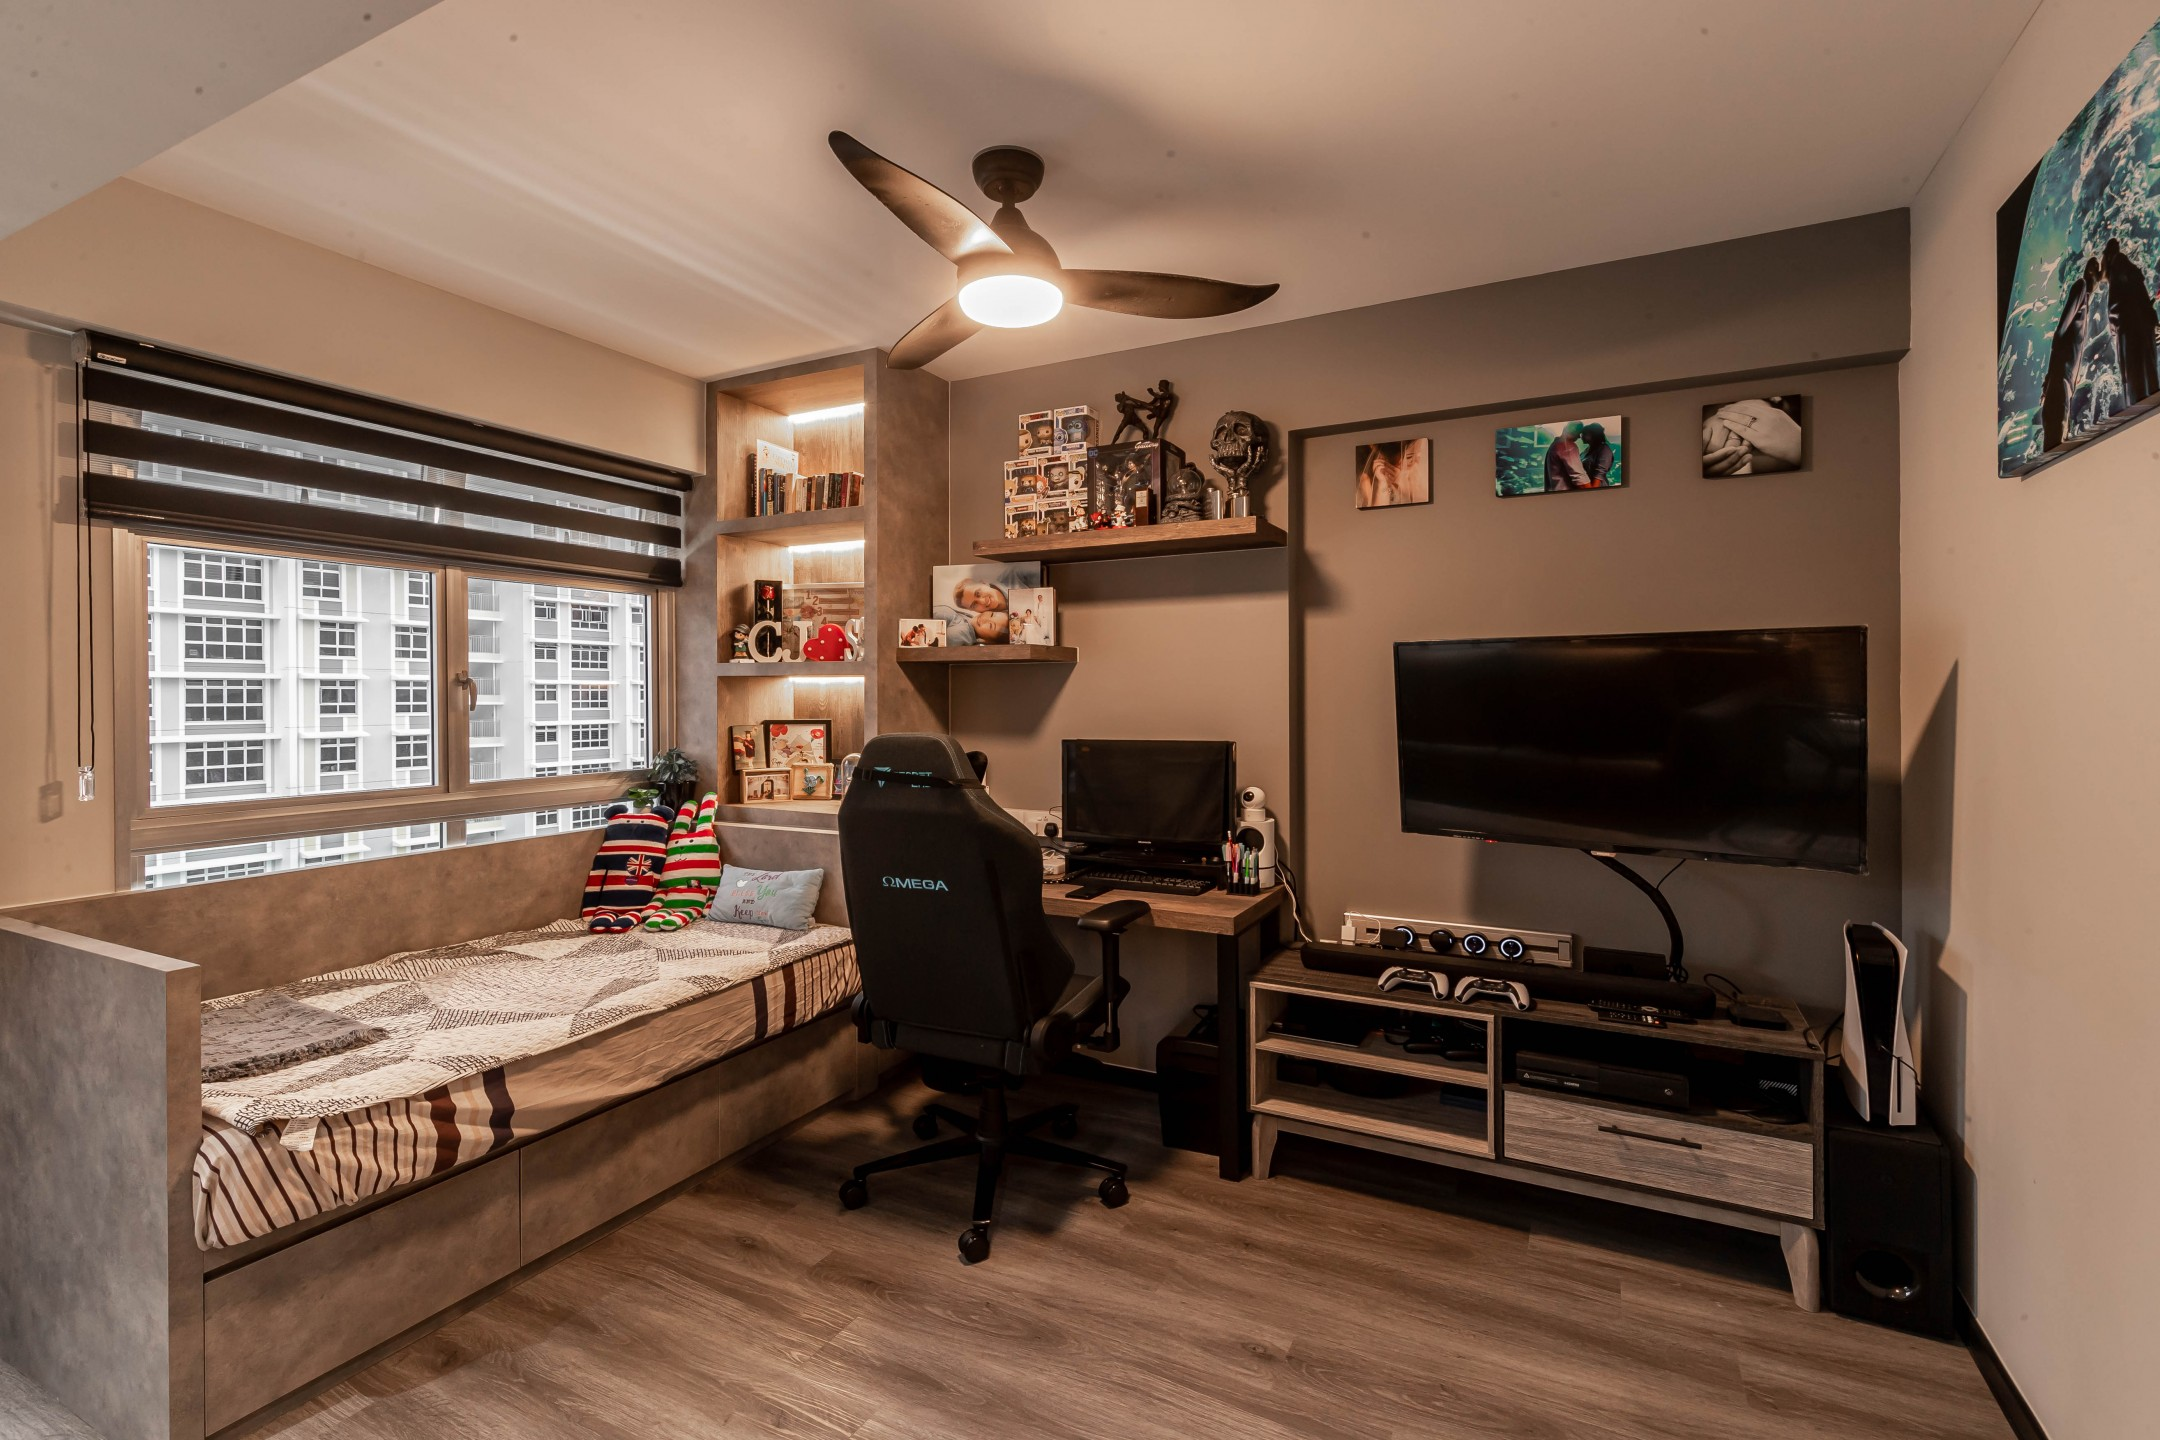 squarerooms renozone northshore industrial home hdb renovation style interior design home office gaming room study daybed